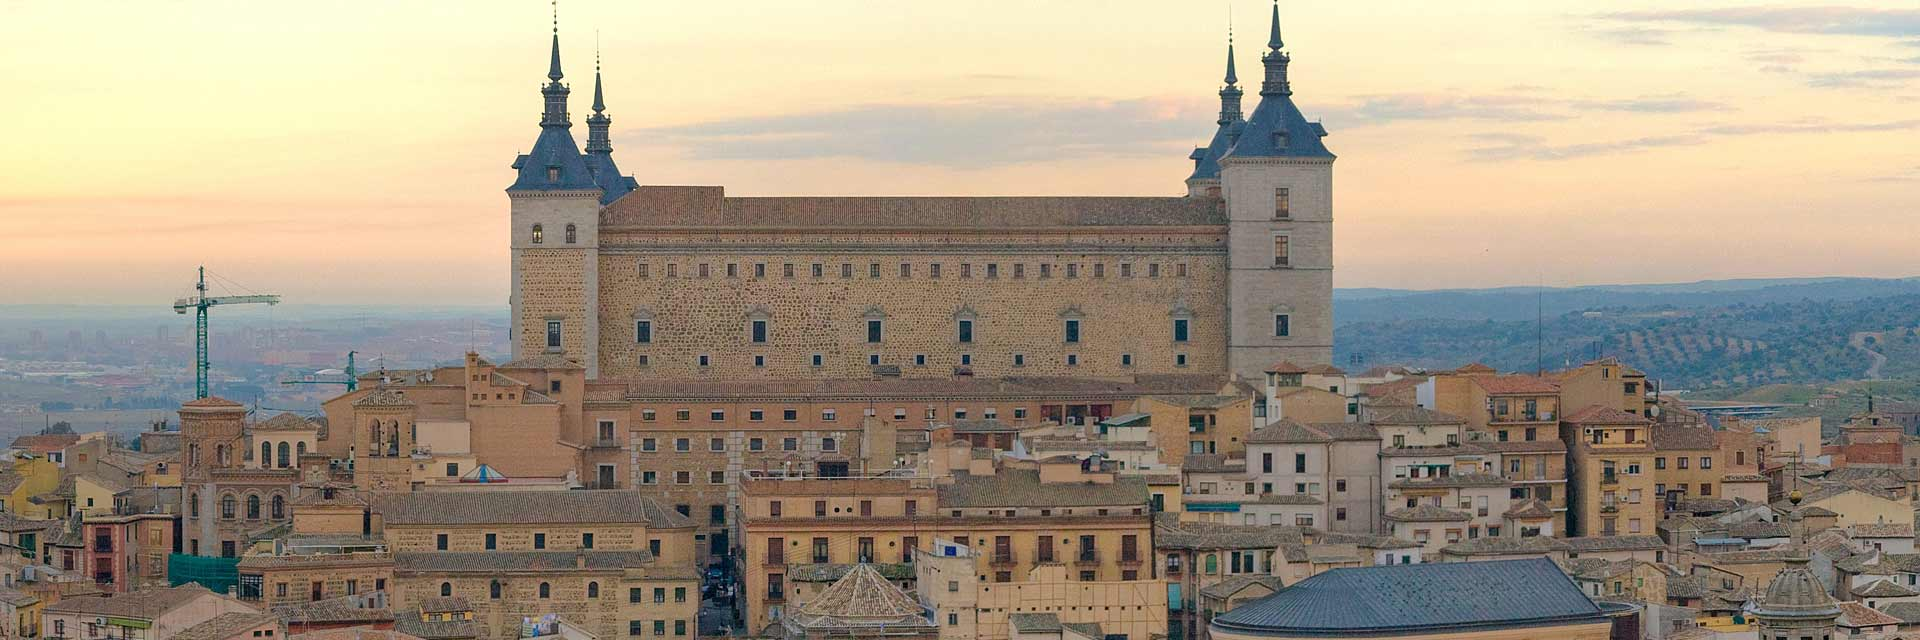 10 Must See Historical and Cultural Sites of Spain